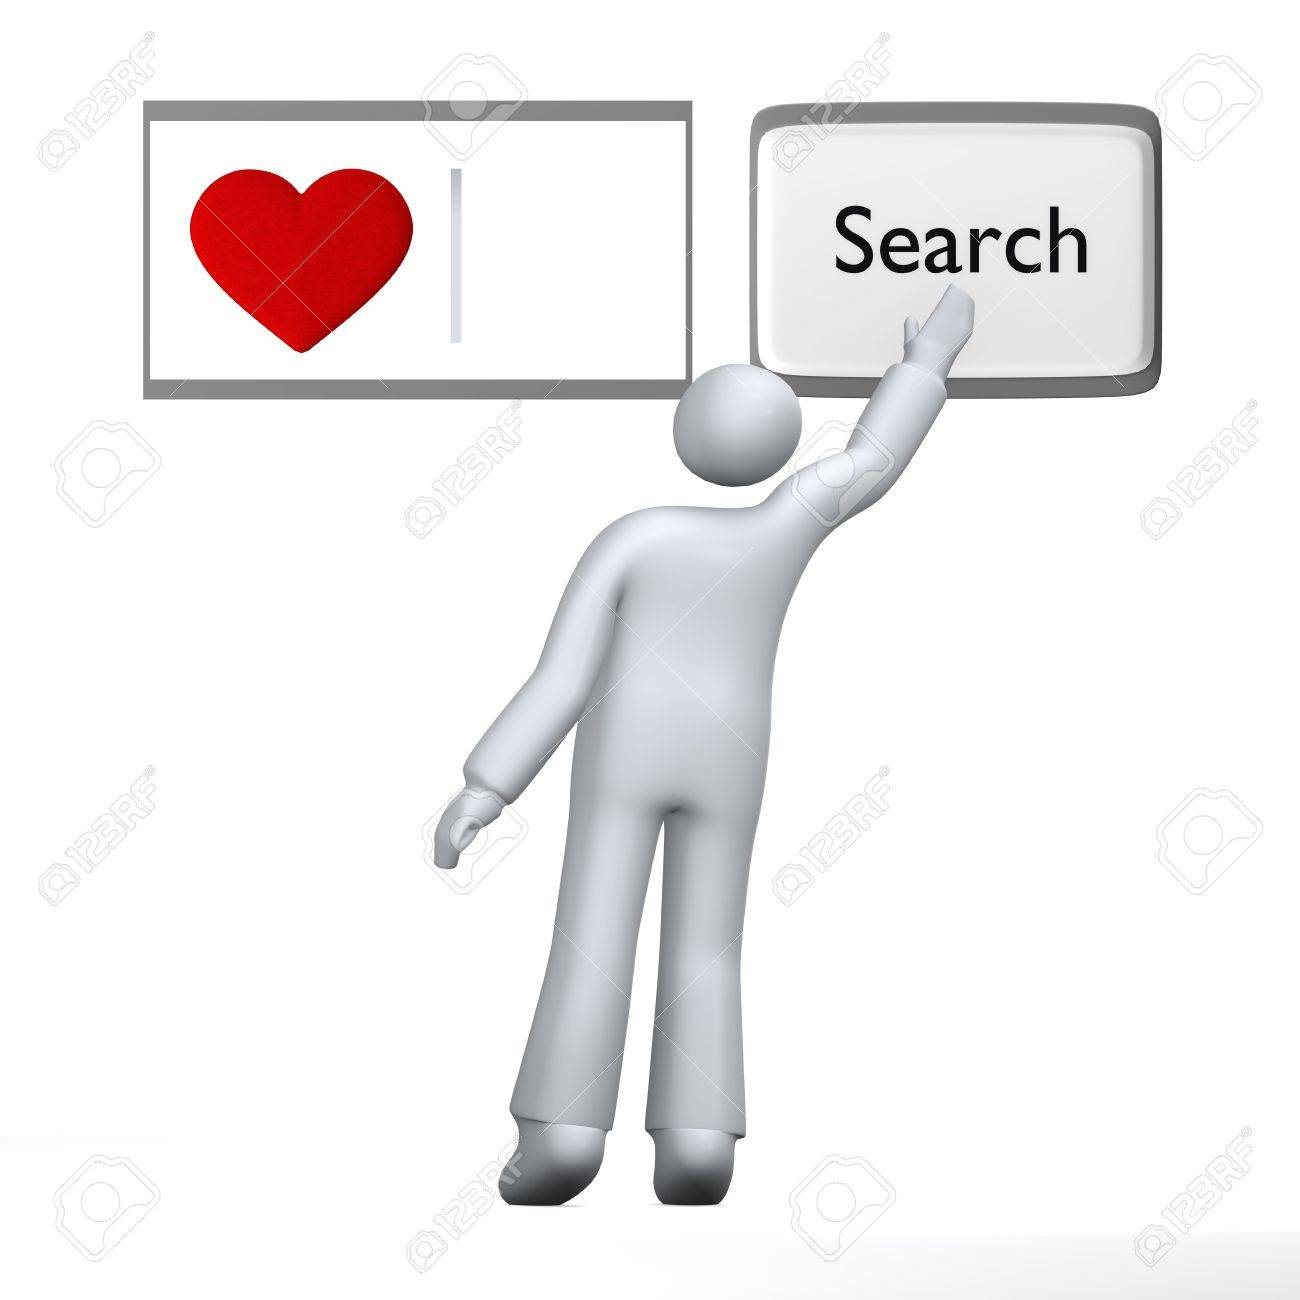 Looking for love, human searching for love with heart using abstract search engine Stock Photo - 4585225